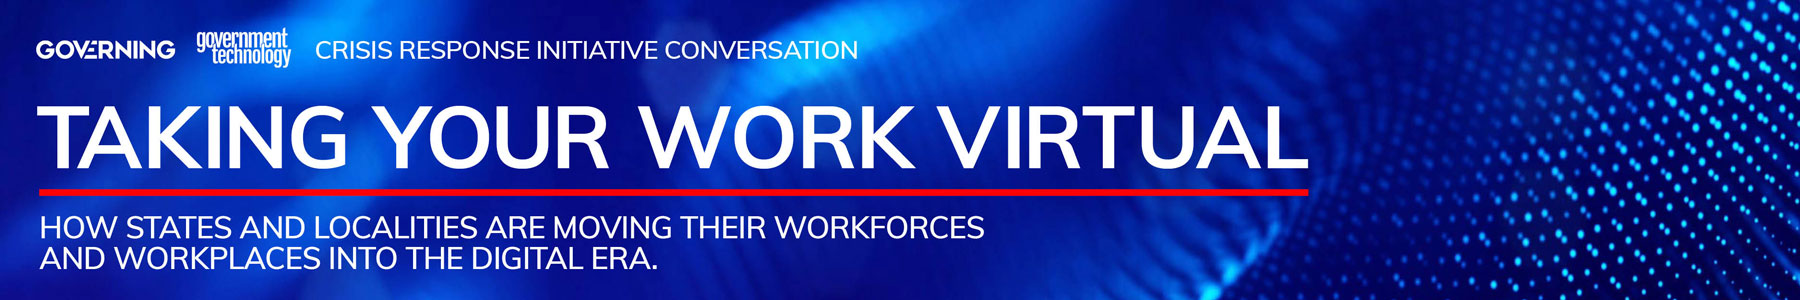 Taking Your Work Virtual: How states and localities are moving their workforces and workplaces into the digital era.